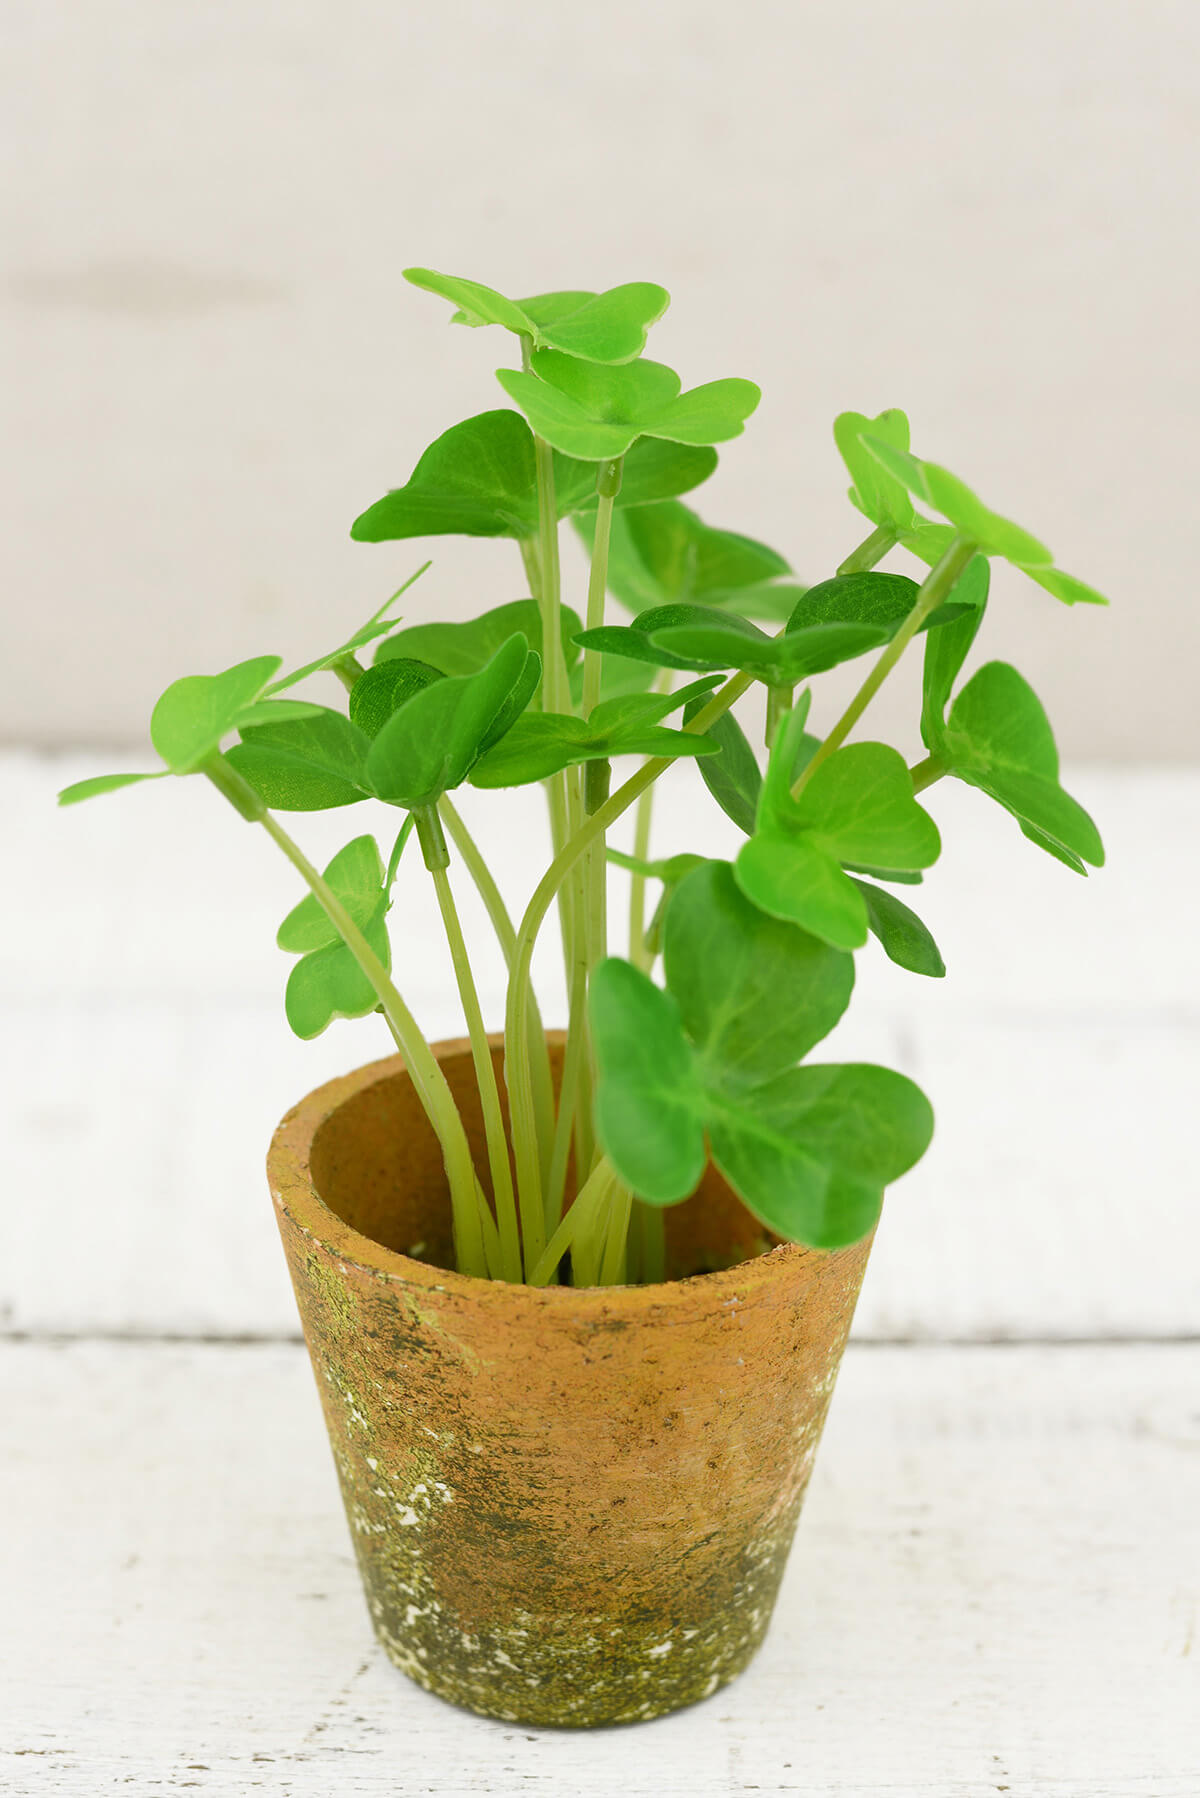 Clover Potted Plant 7 Quot